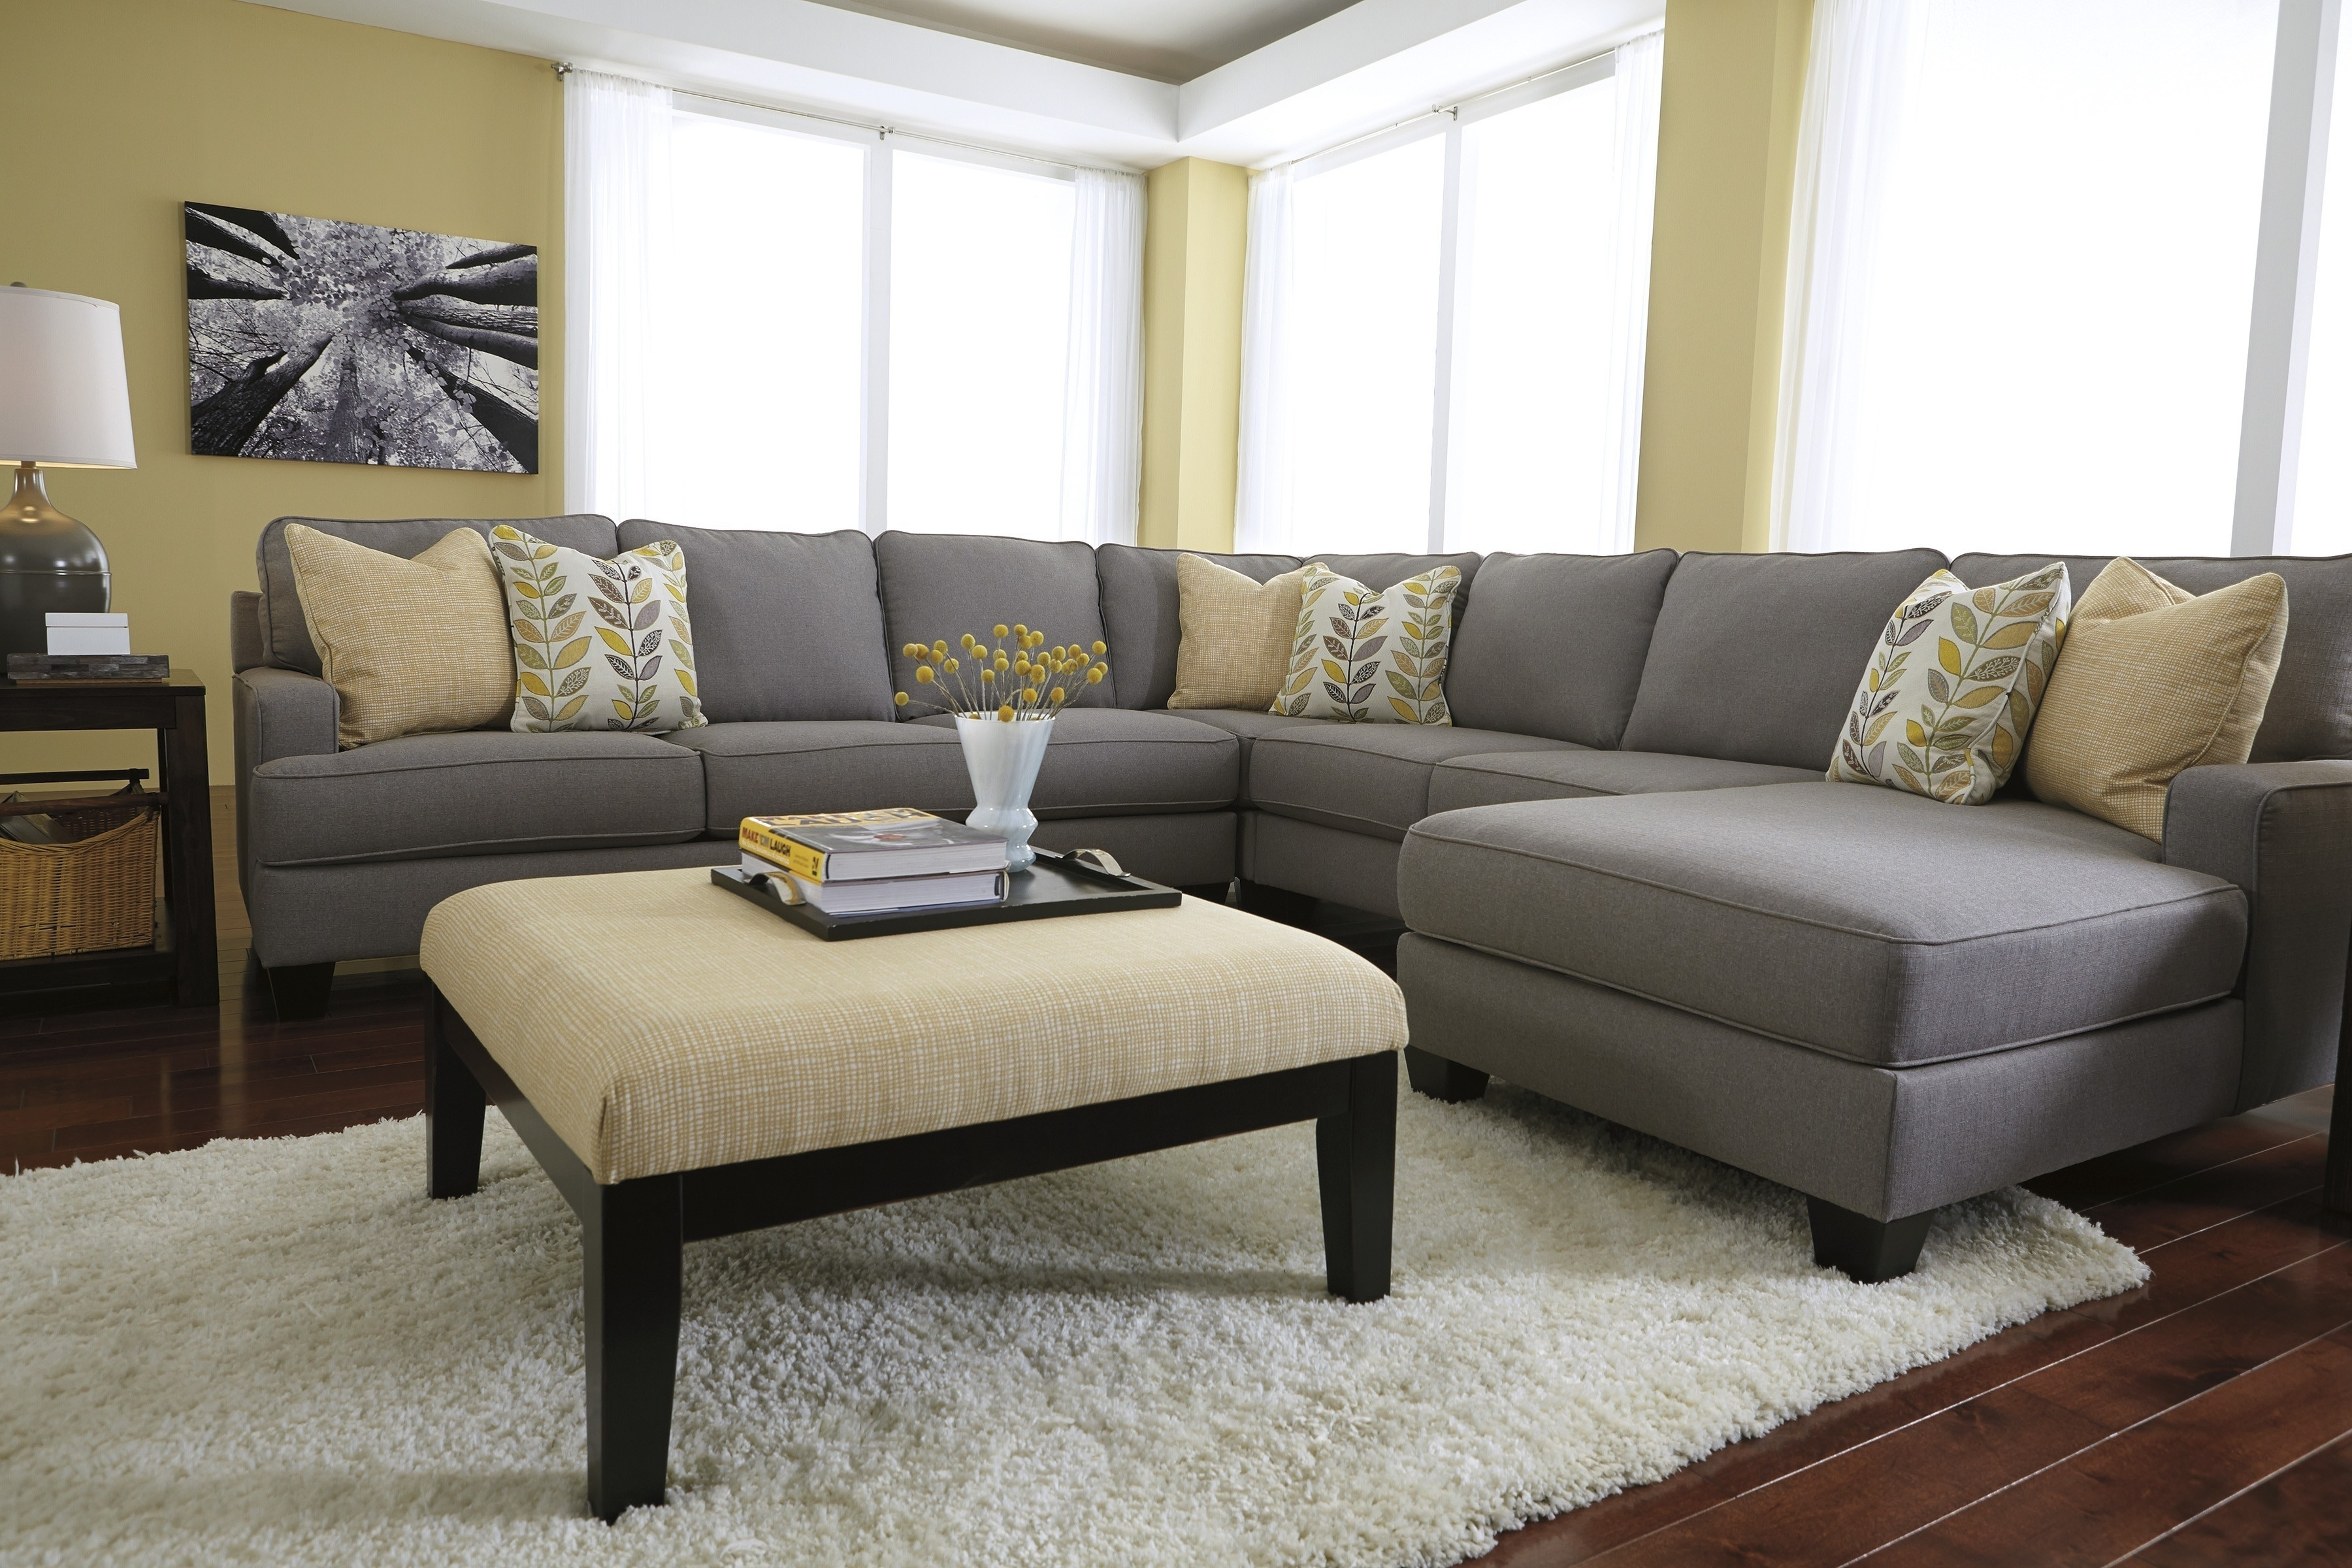 Amazing Oversized Sectional Sofas Cheap 24 With Additional Sleek Intended For Sleek Sectional Sofas (View 1 of 10)